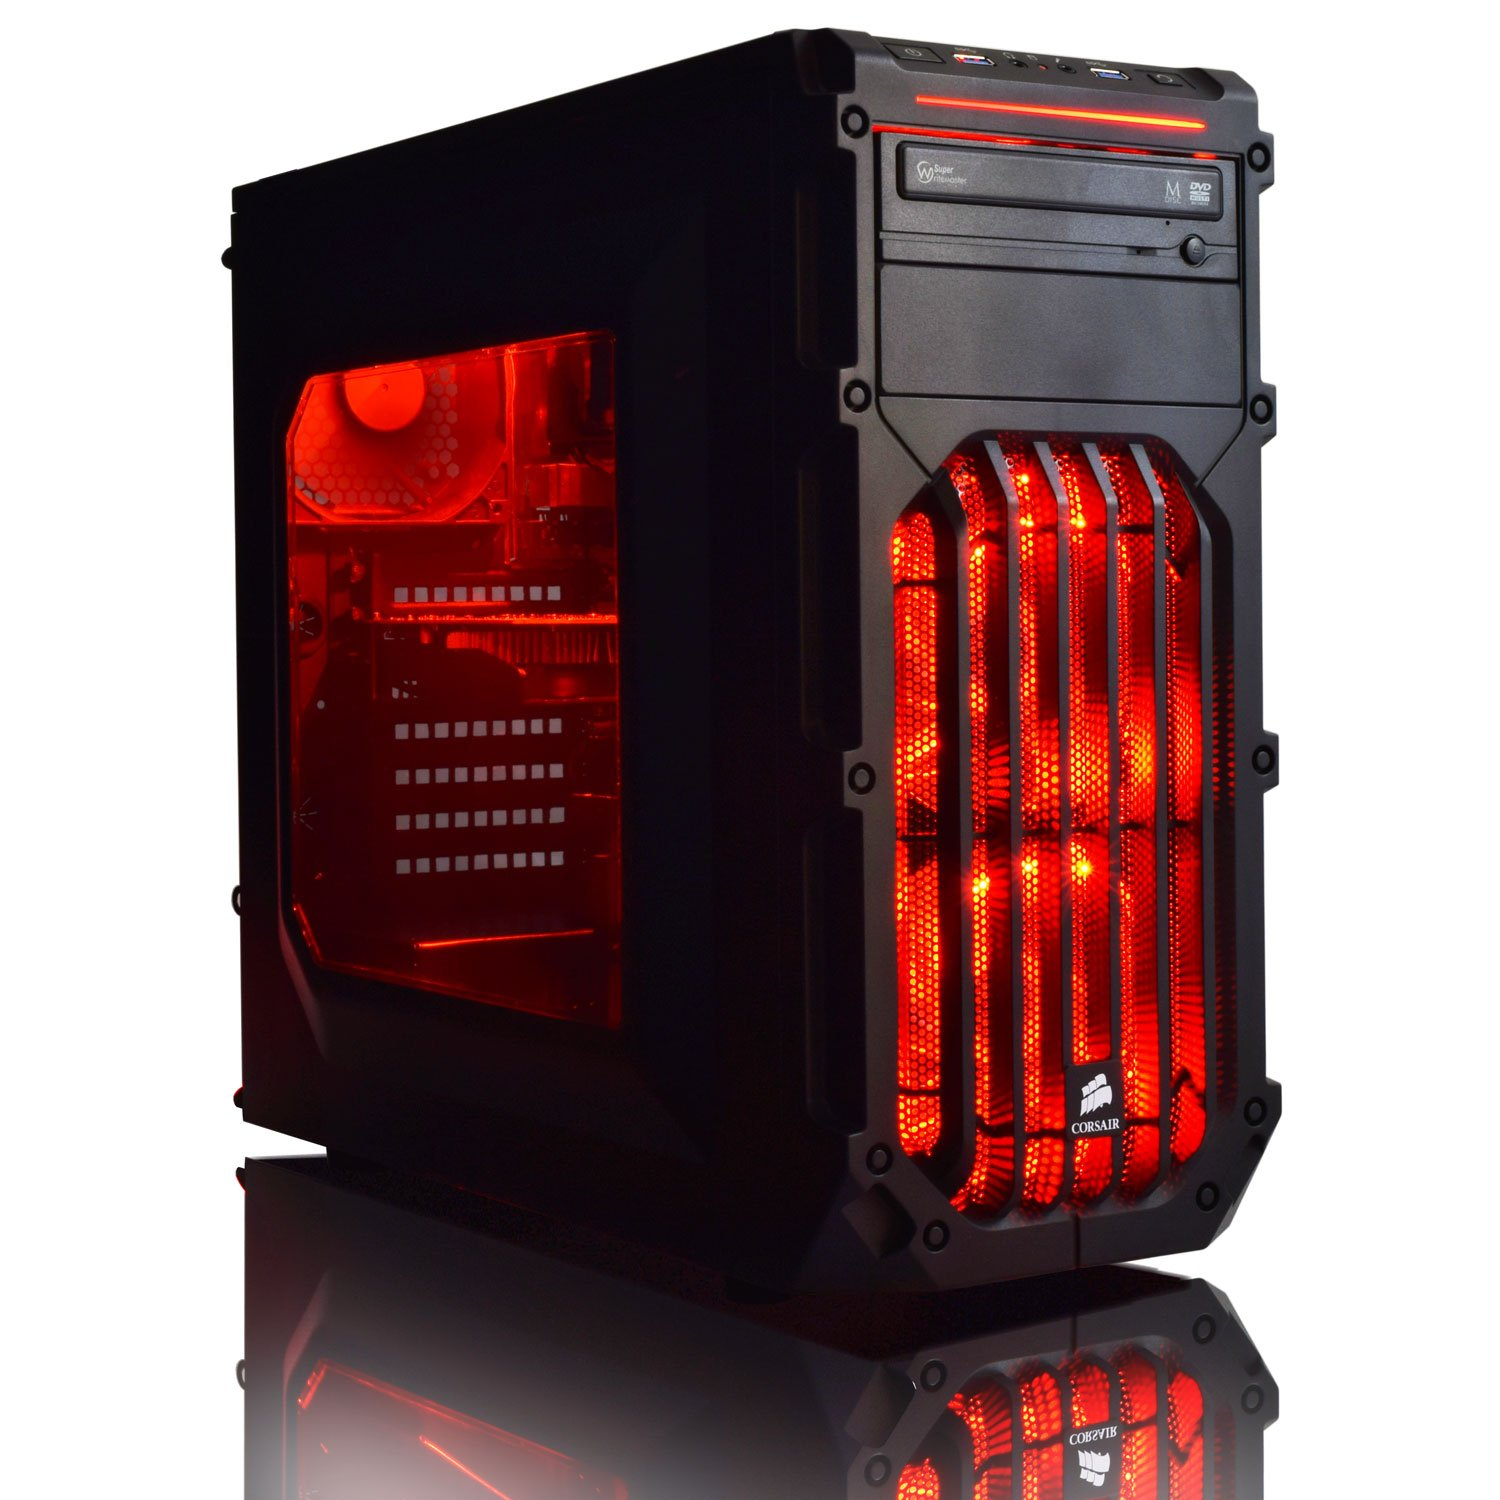 ADMI ULTRA GAMING PC – AMD FX-6350 High Spec Red LED Home, Family, Multimedia Desktop Gaming Computer with Platinum Warranty: Powerful Six Core 4.20GHz Turbo CPU, NVIDIA GTX 750Ti 2GB HDMI Graphics Card, 8GB 1600MHz DDR3 RAM, 1TB Hard Drive Storage, HDMI Output 1080p, High Speed USB 3.0, 150Mbps WiFi included, Pre-Installed with Windows 7 Home Premium 64bit Operating System